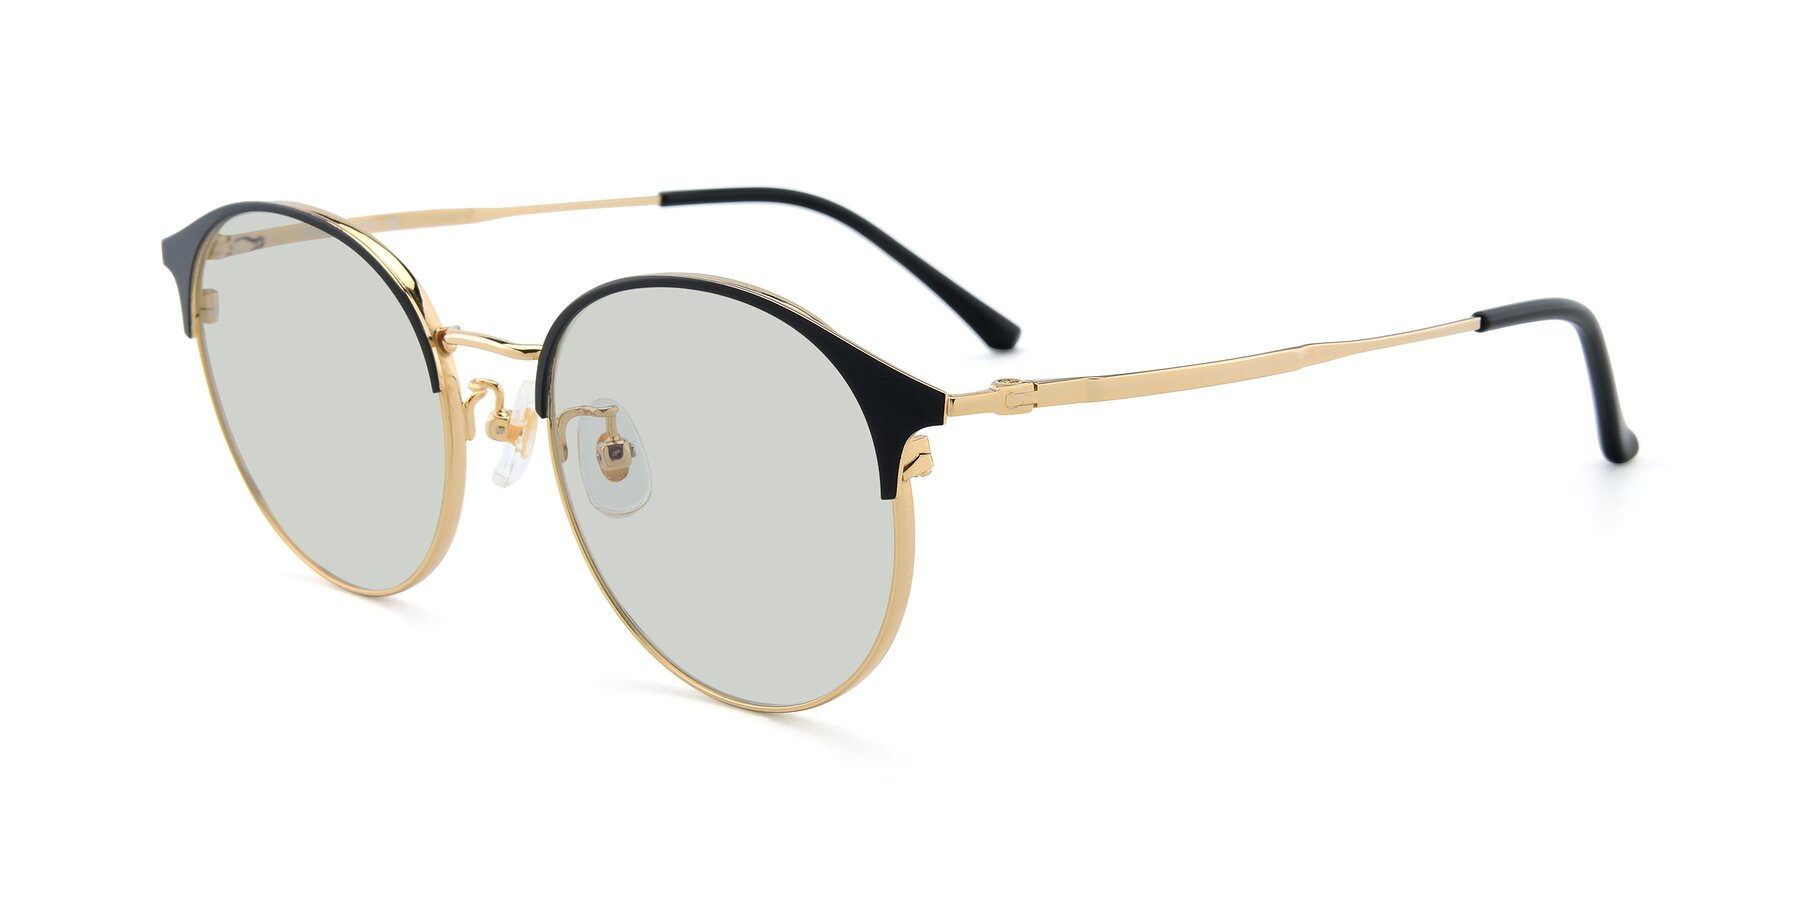 Angle of XC-8031 in Black-Gold with Light Green Tinted Lenses